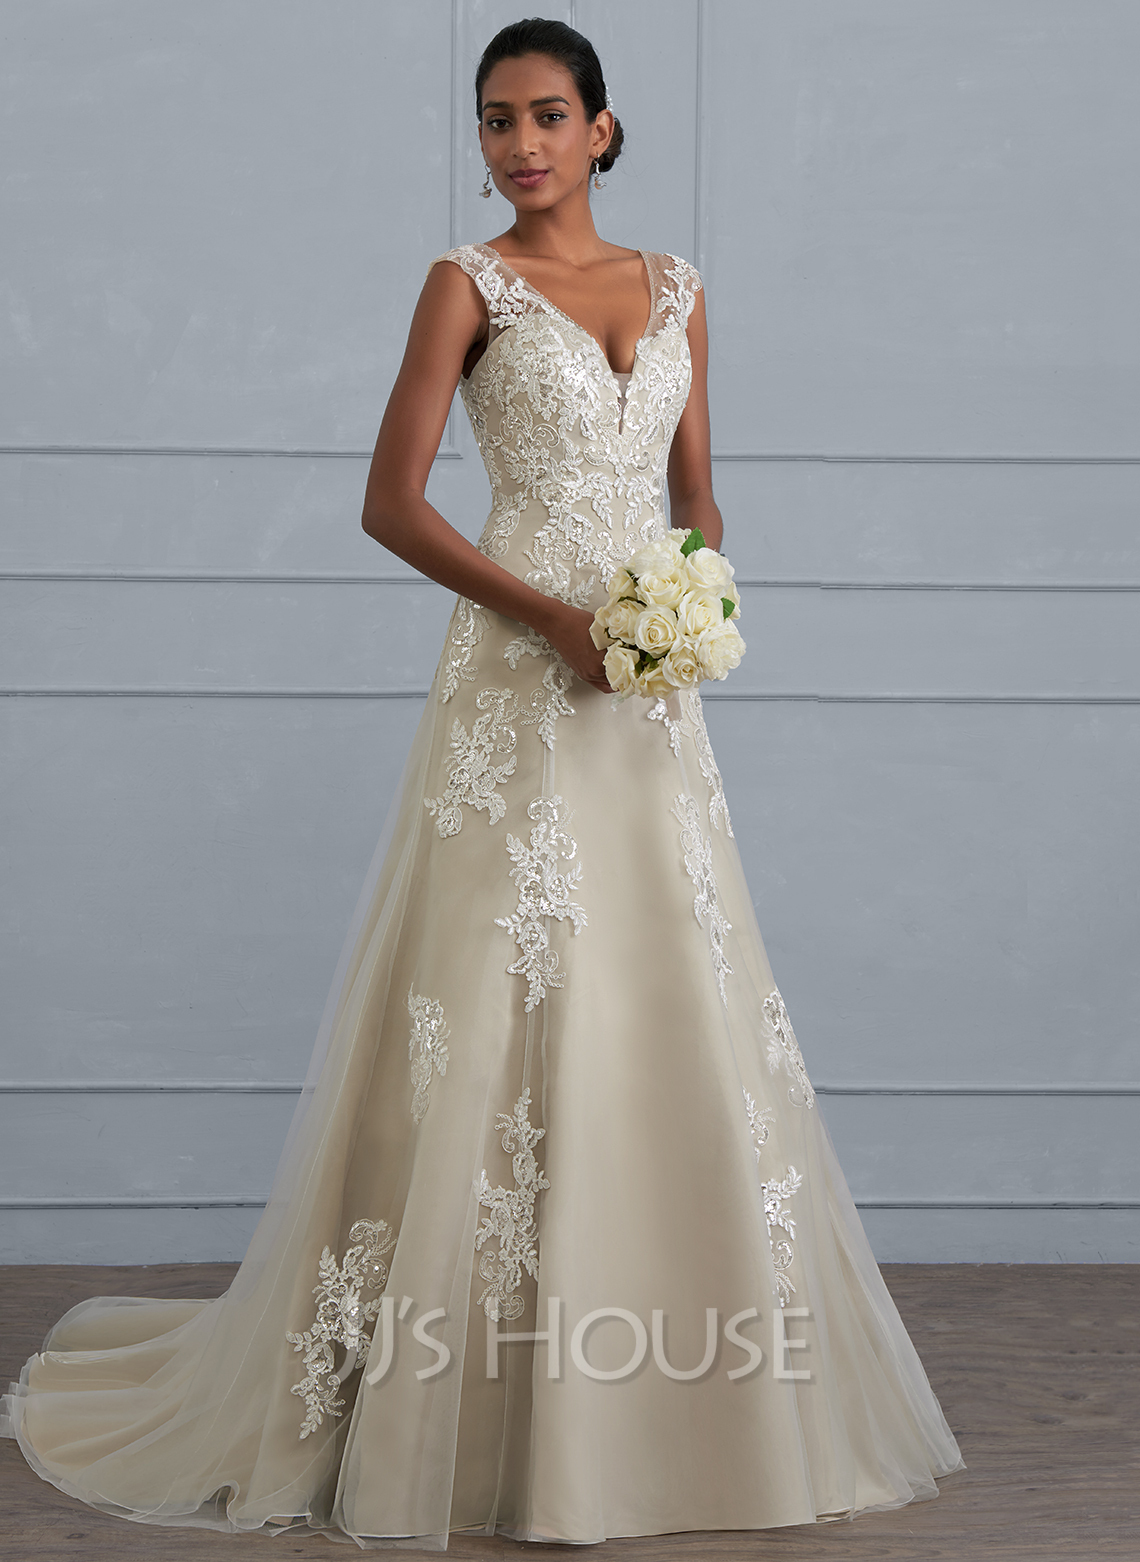 bde62e87c40e4 A-Line/Princess V-neck Court Train Tulle Lace Wedding Dress With Beading.  Loading zoom